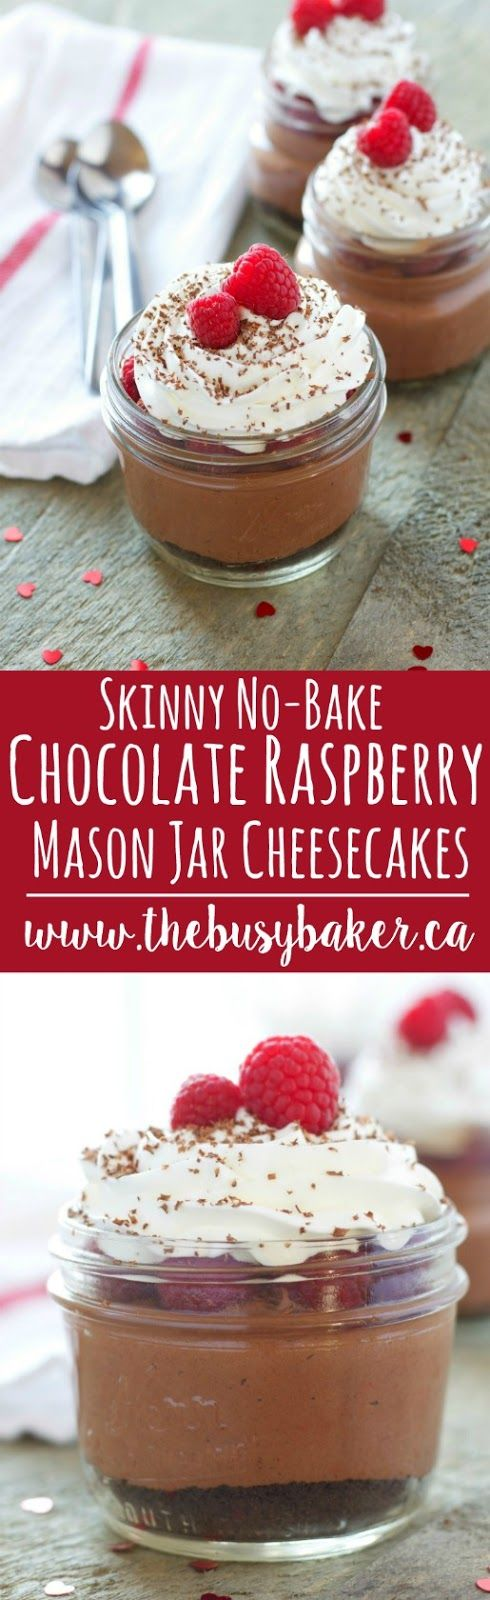 Busy Baker: Skinny No-Bake Chocolate Raspberry Mason Jar Cheesecakes ...